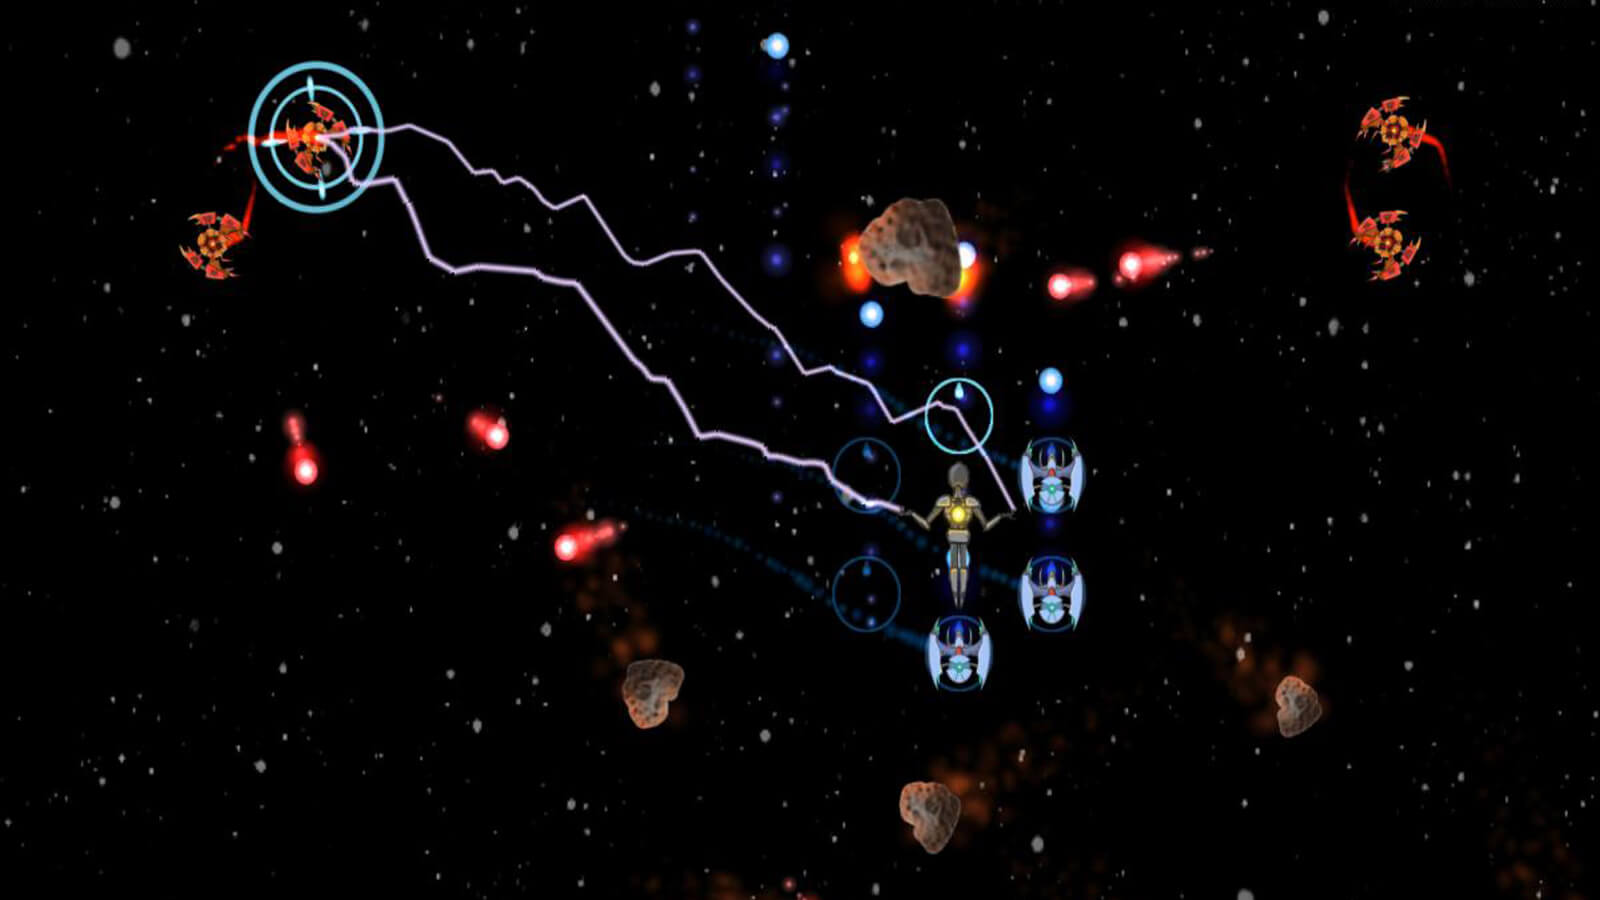 A humanoid controlling three ships zaps a red enemy ship as asteroids float by.